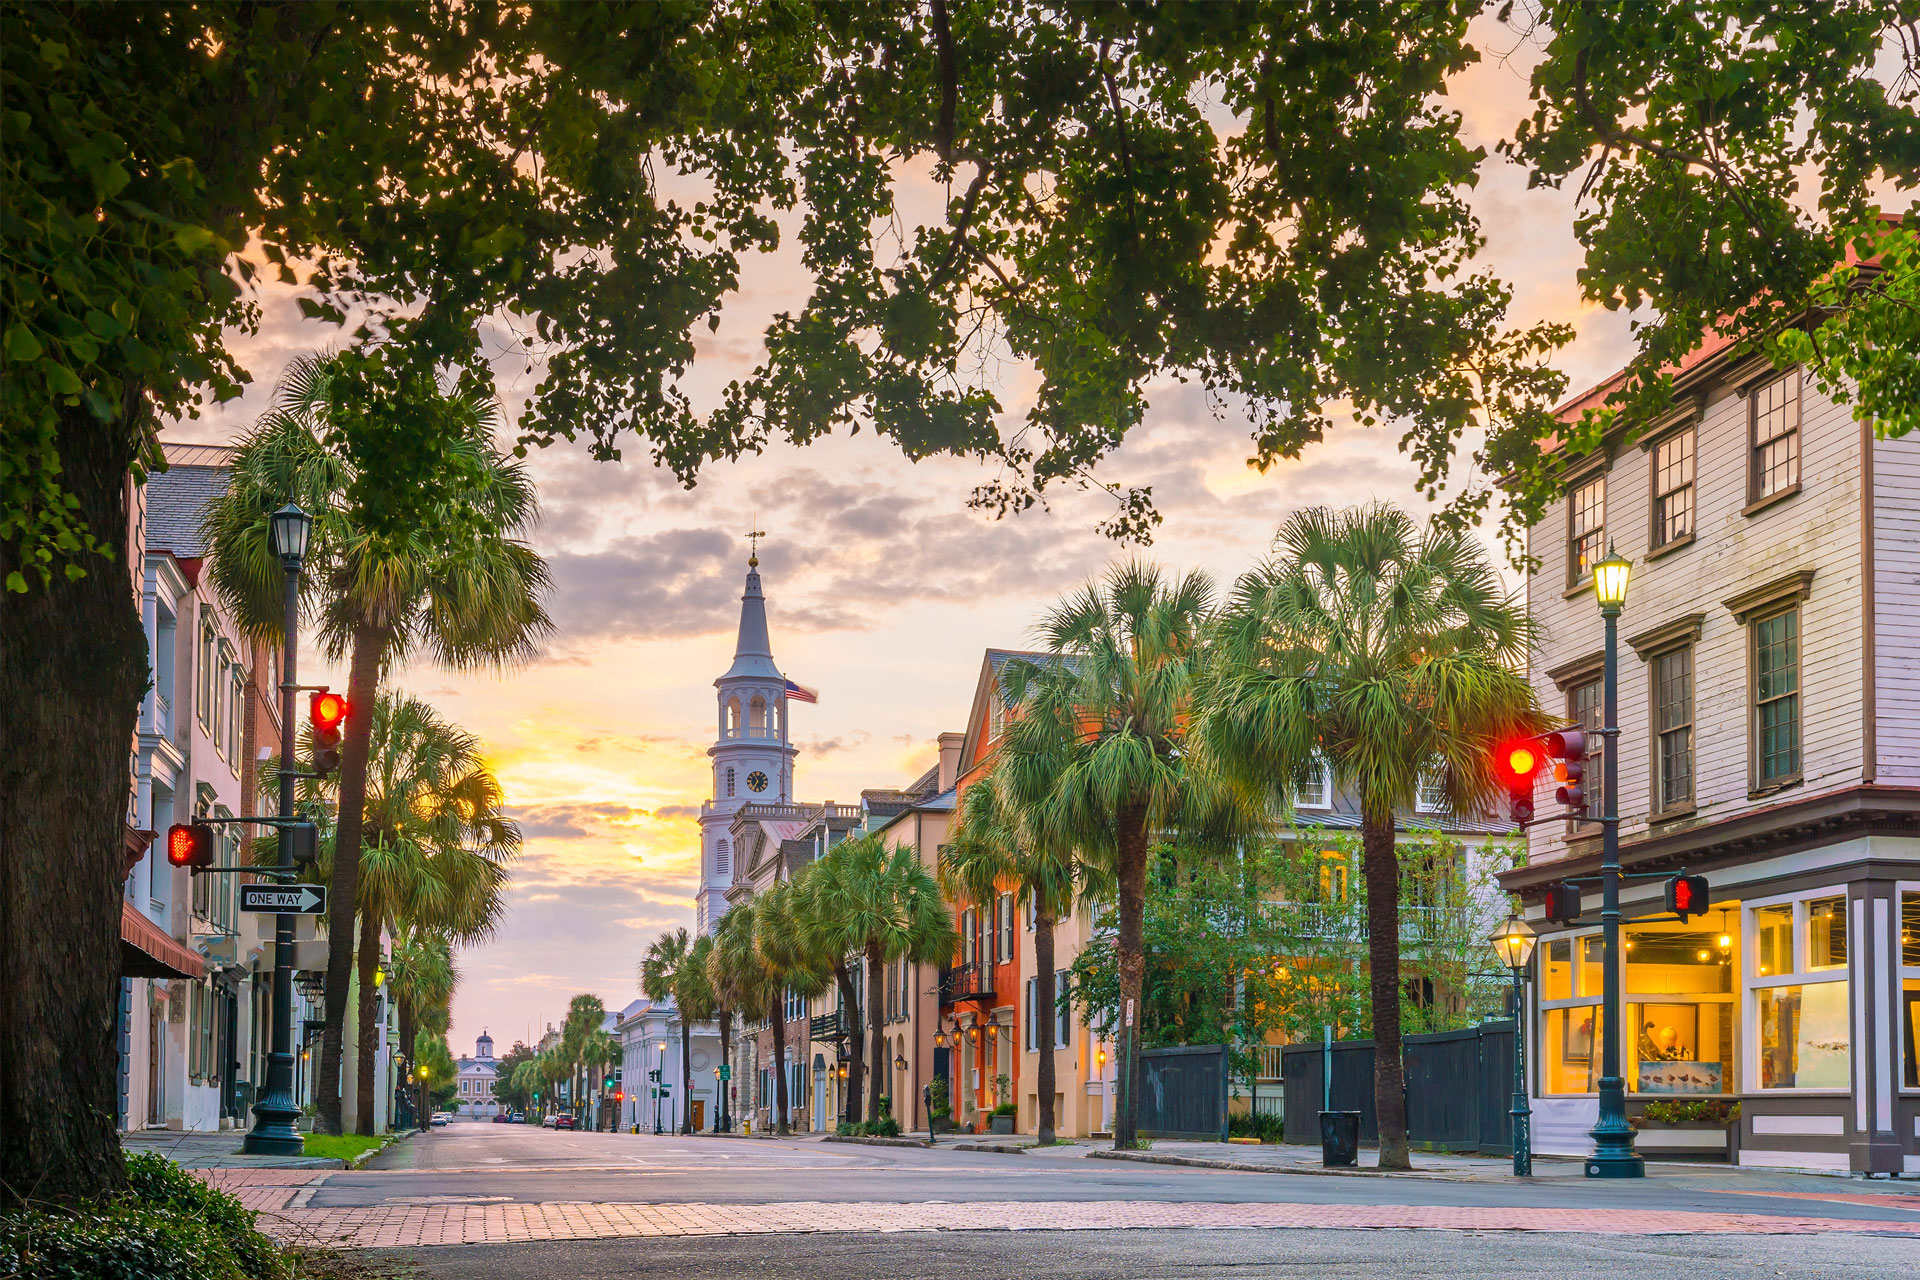 Charleston, South Carolina; Courtesy of f11photo/Shutterstock.com